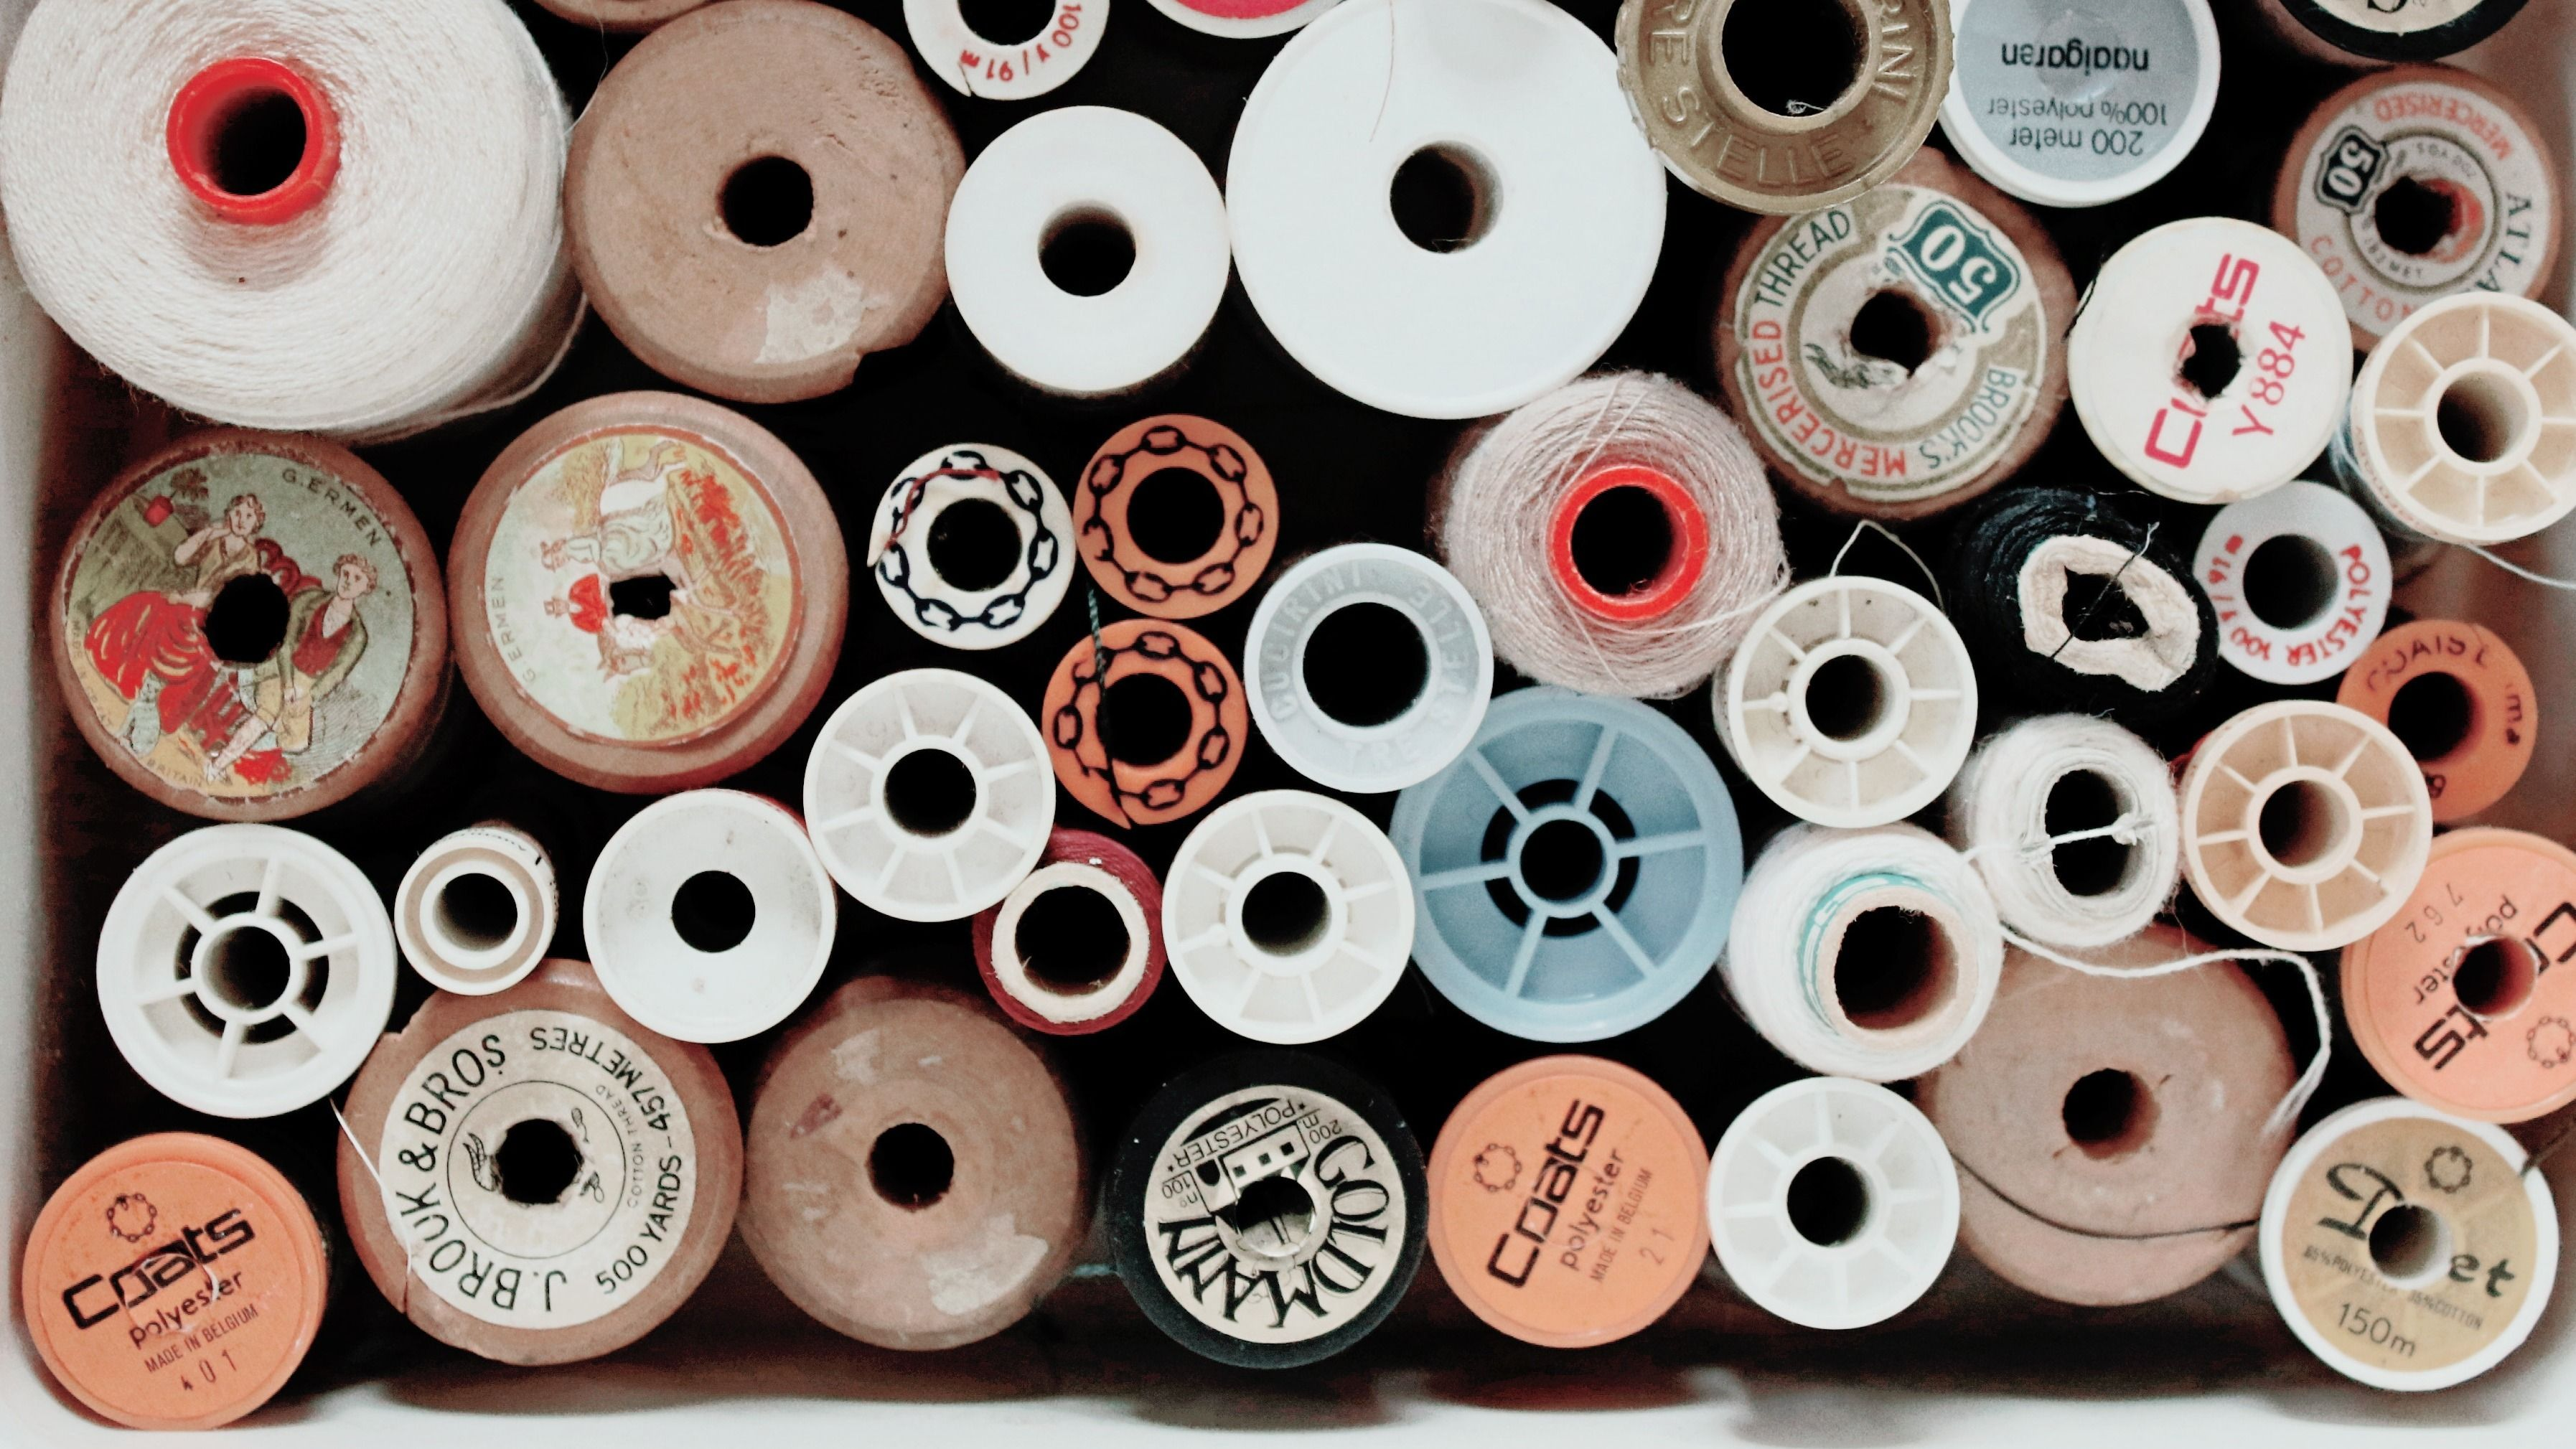 Lyon Couture et Création club/ Lyon Sewing & Crafting Club